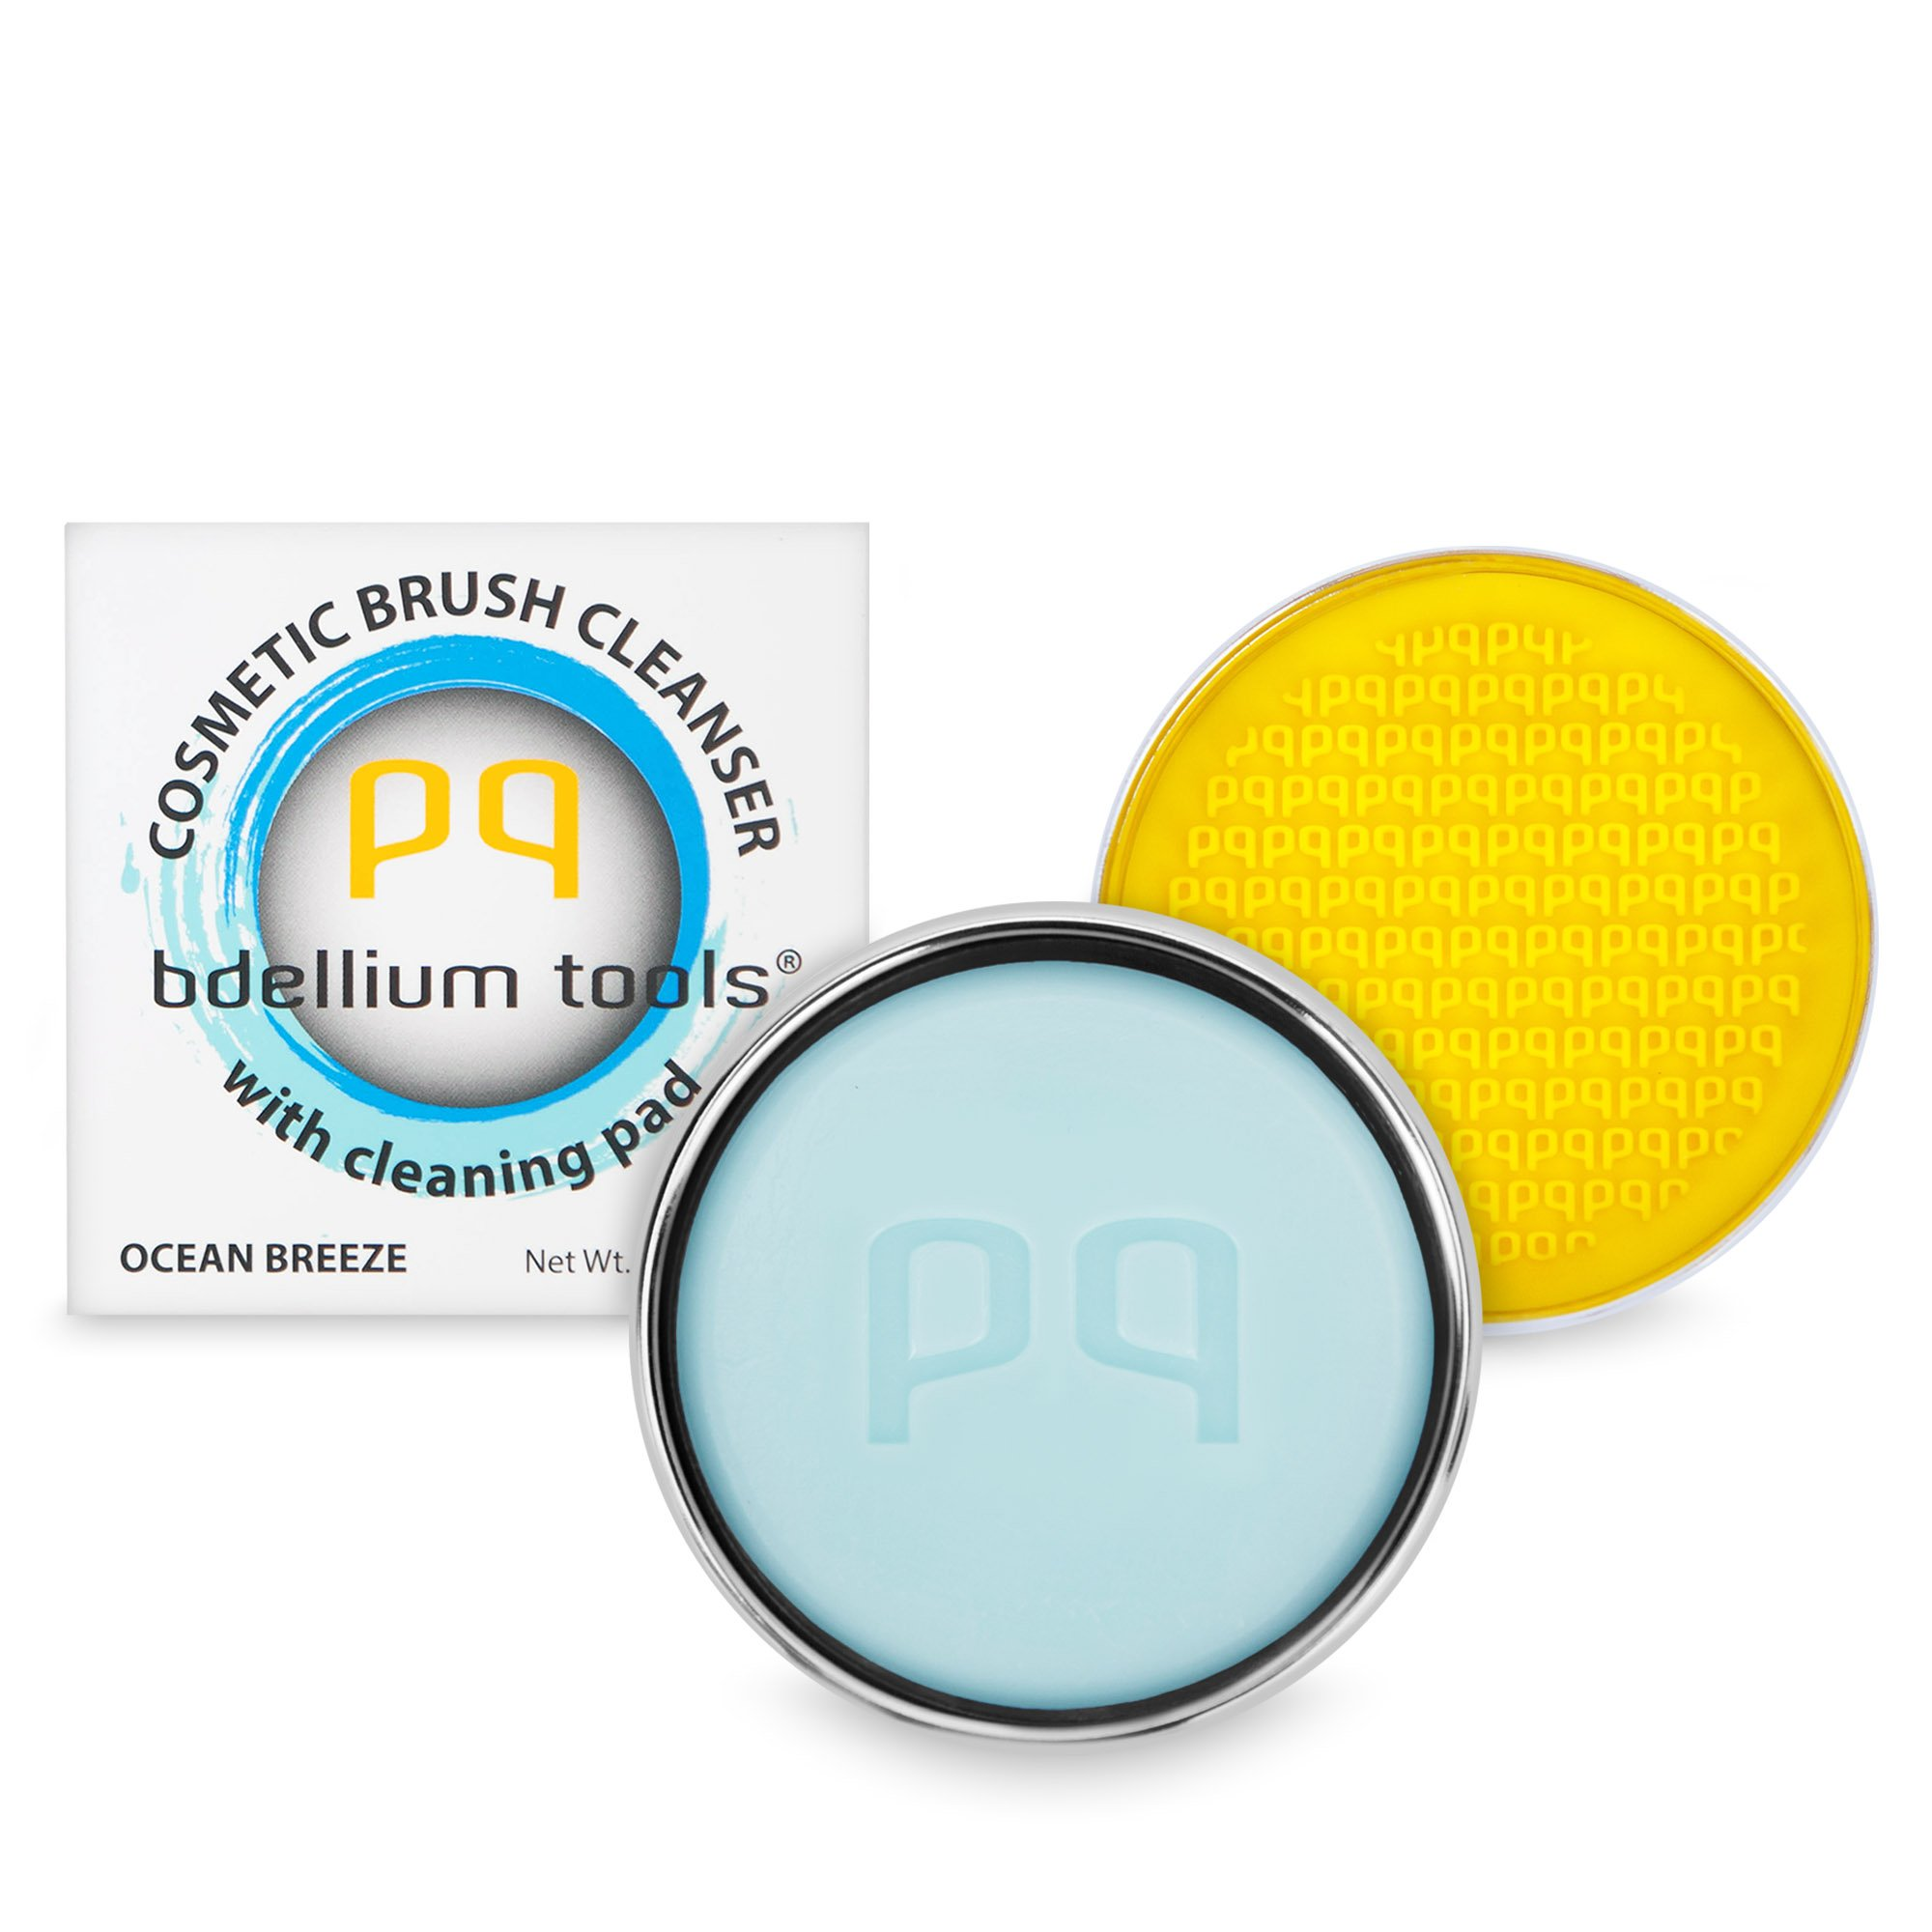 Bdellium Tools Cosmetic Brush Cleanser (Solid Brush Soap) with Cleaning Pad - Ocean Breeze Scent (Blue)